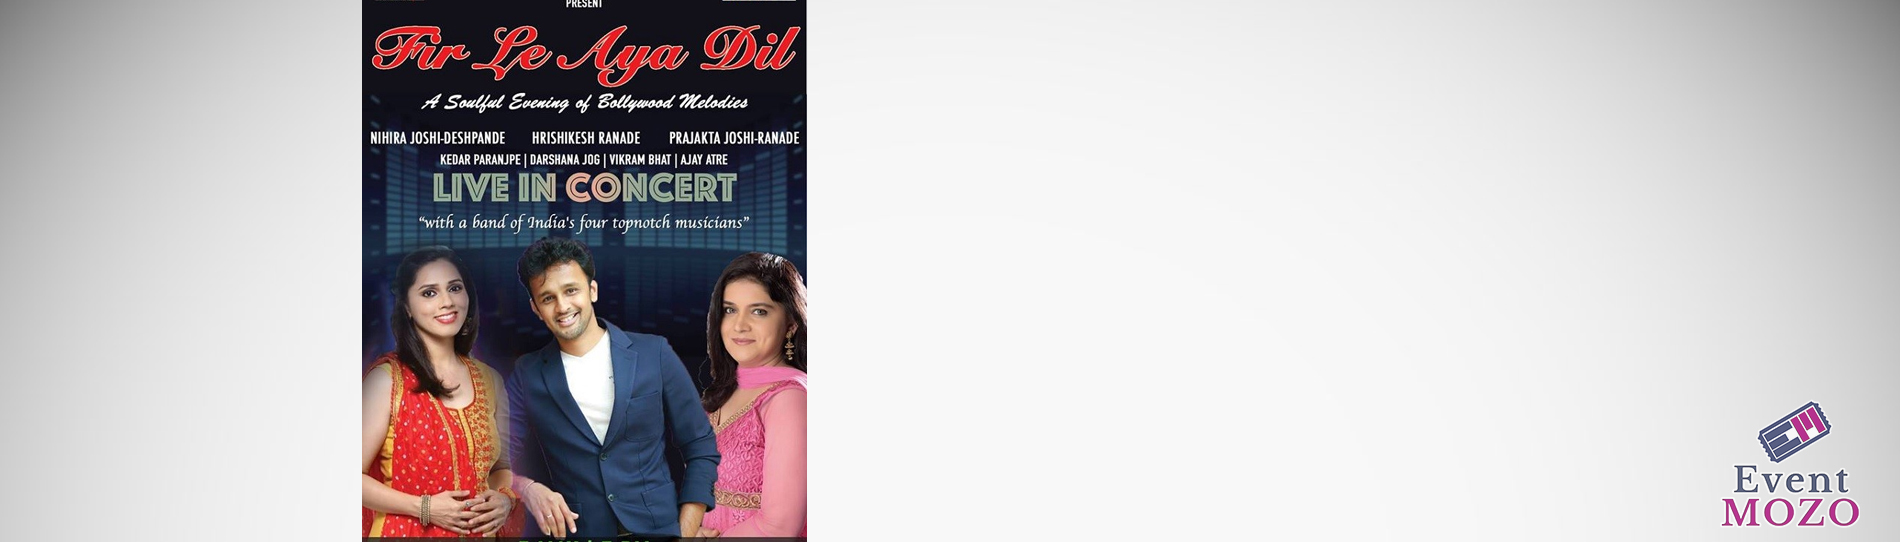 EventMozo Fir Le Aya Dil - Live in Concert